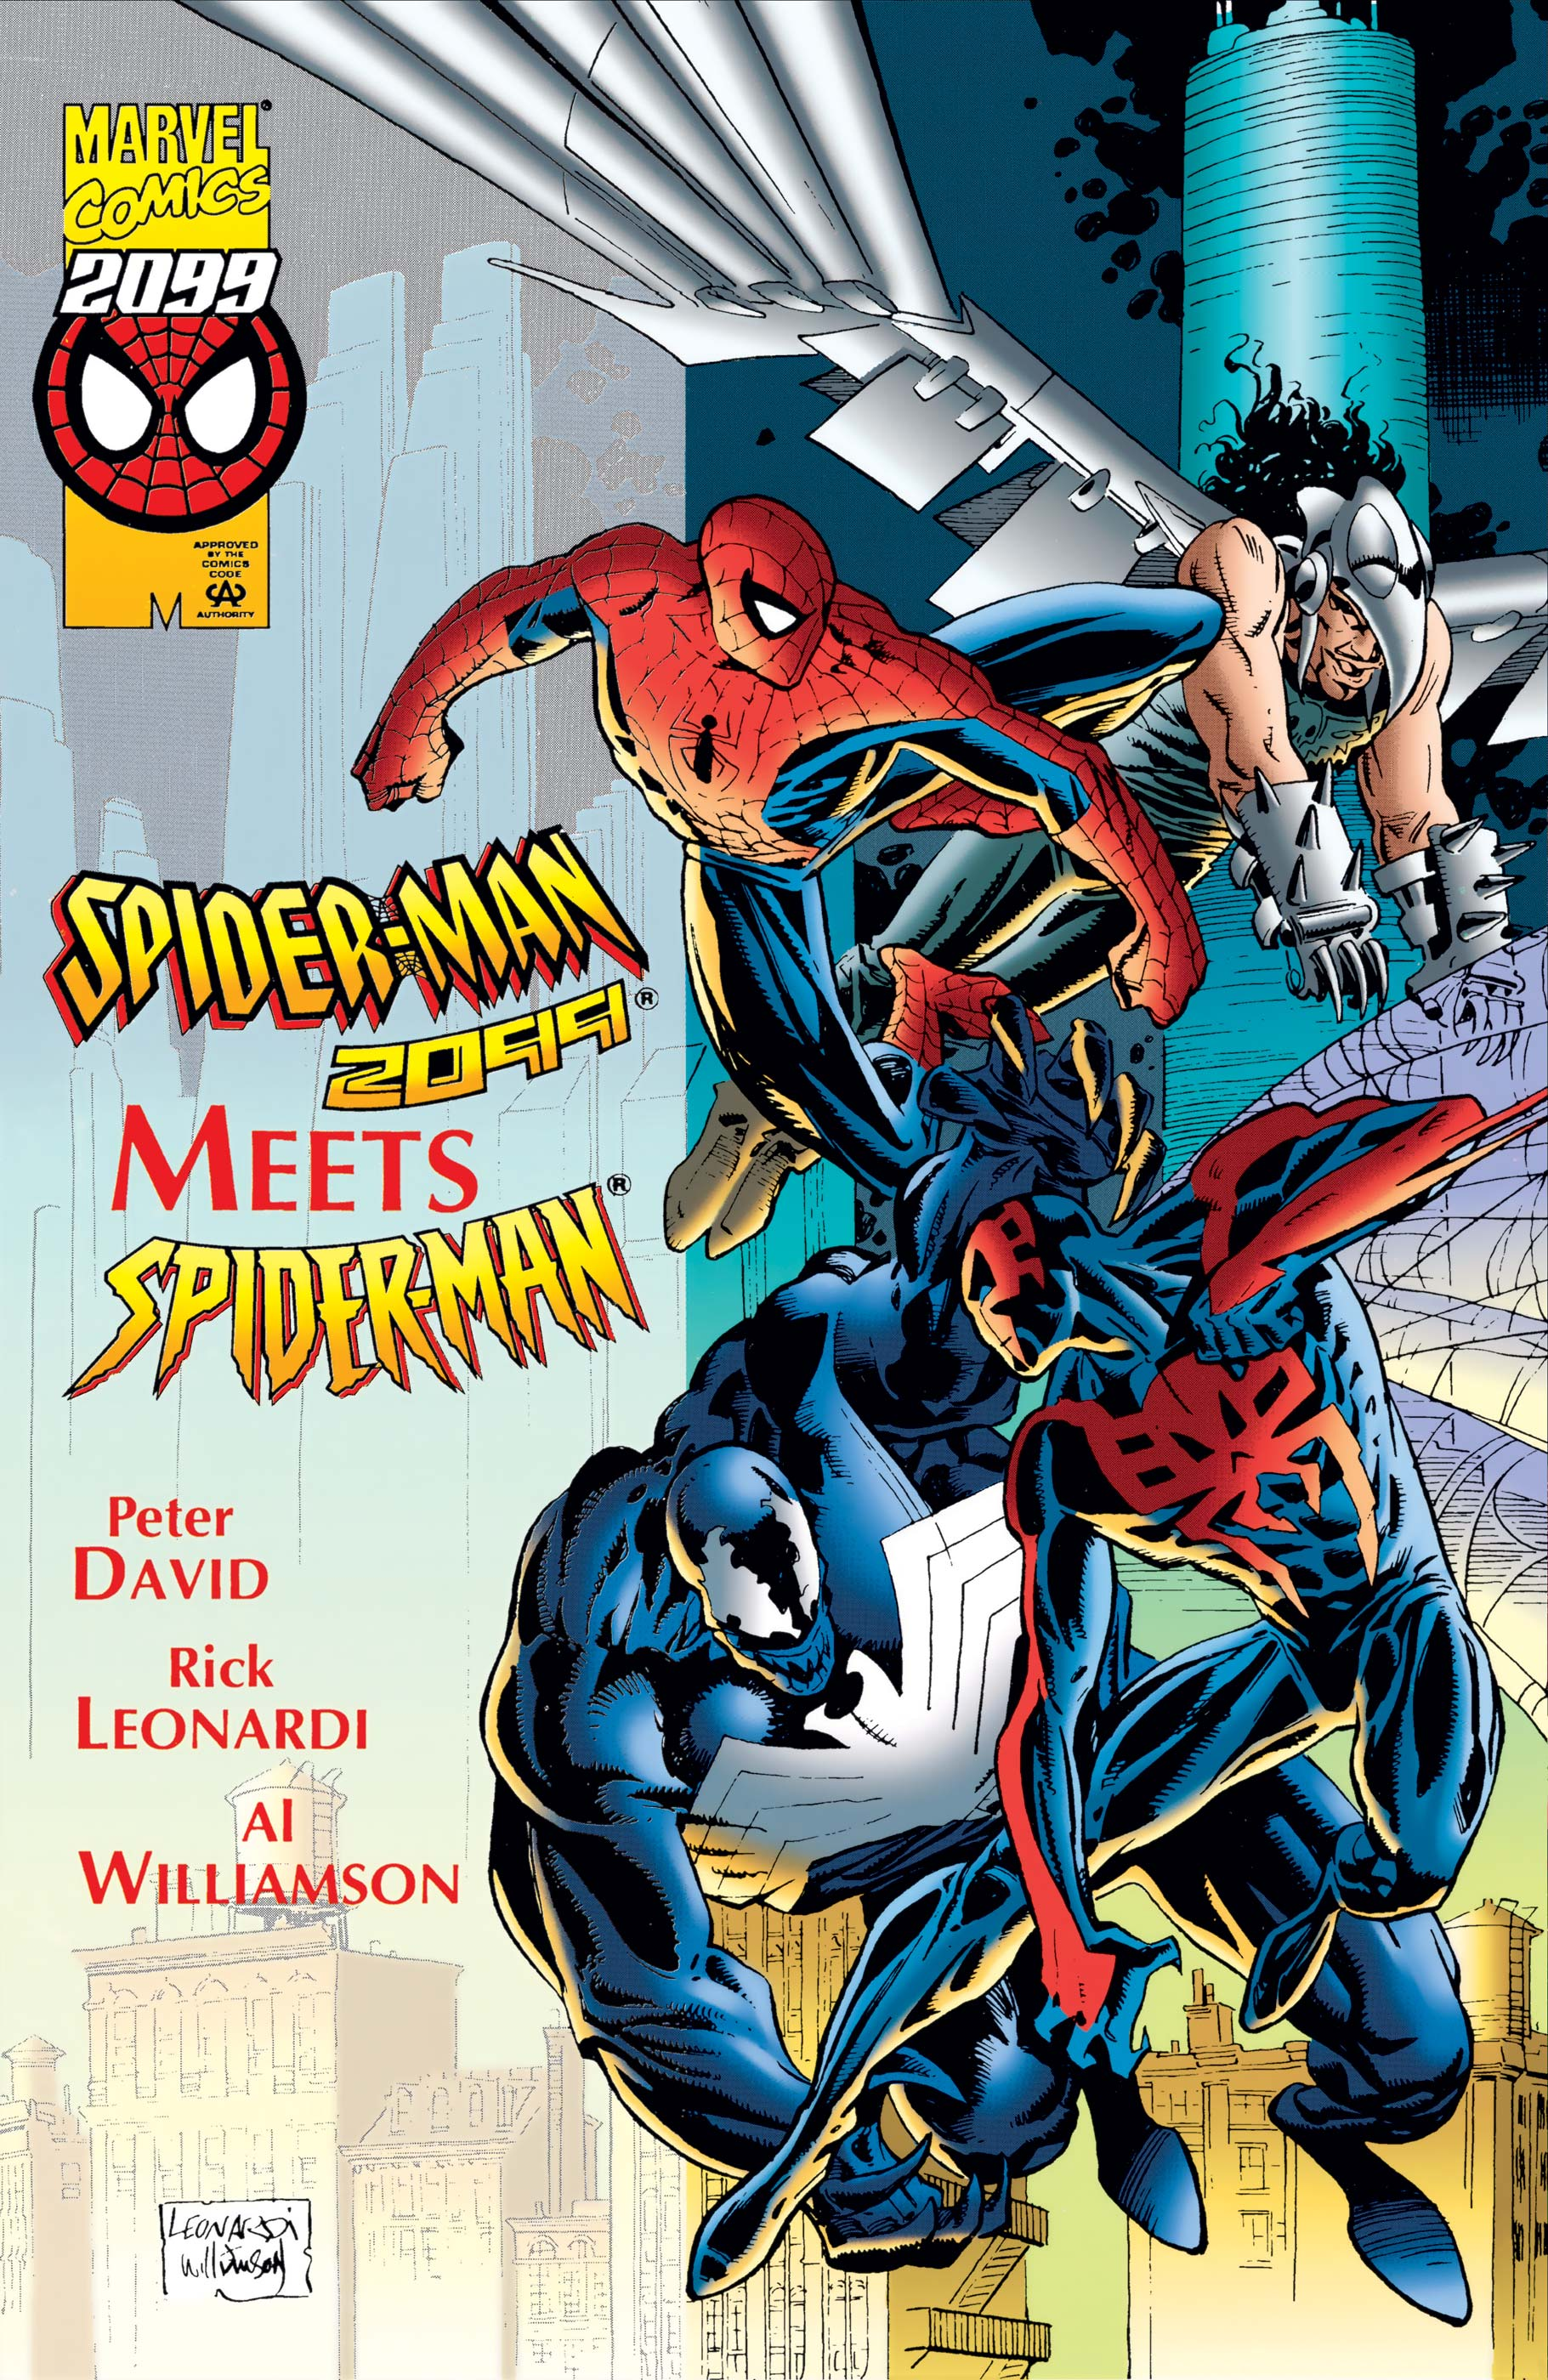 Spider-Man 2099 Meets Spider-Man (1995) #1